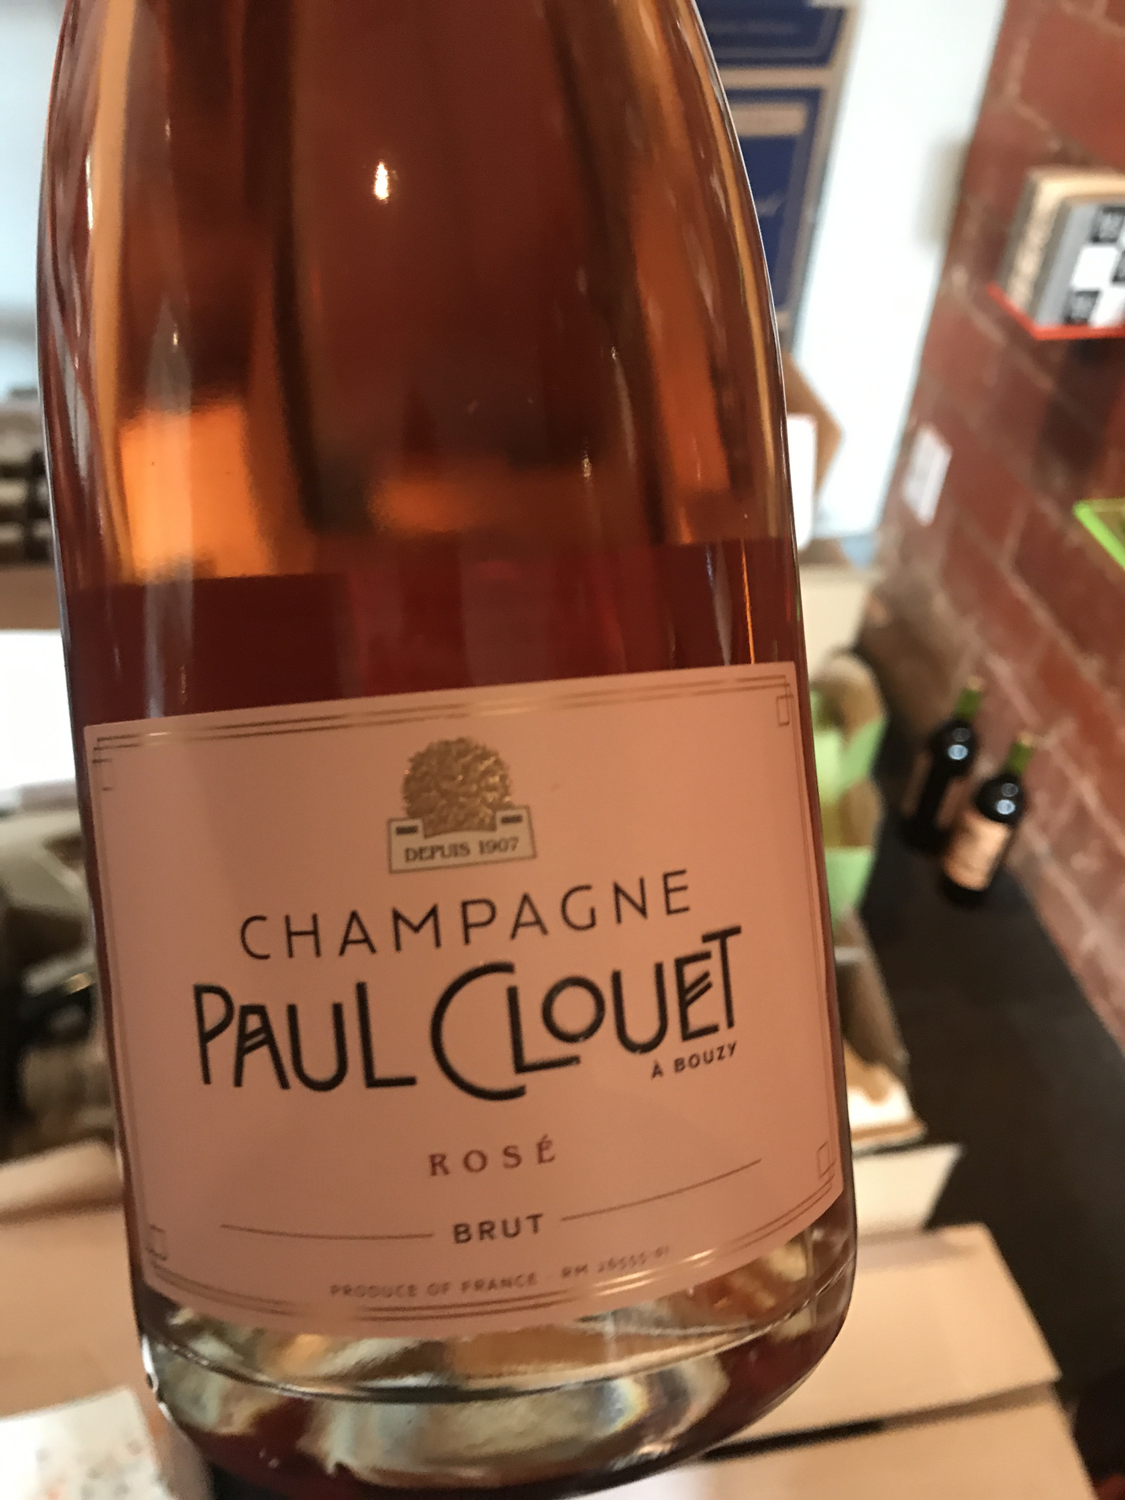 Paul Clouet Brut Rose